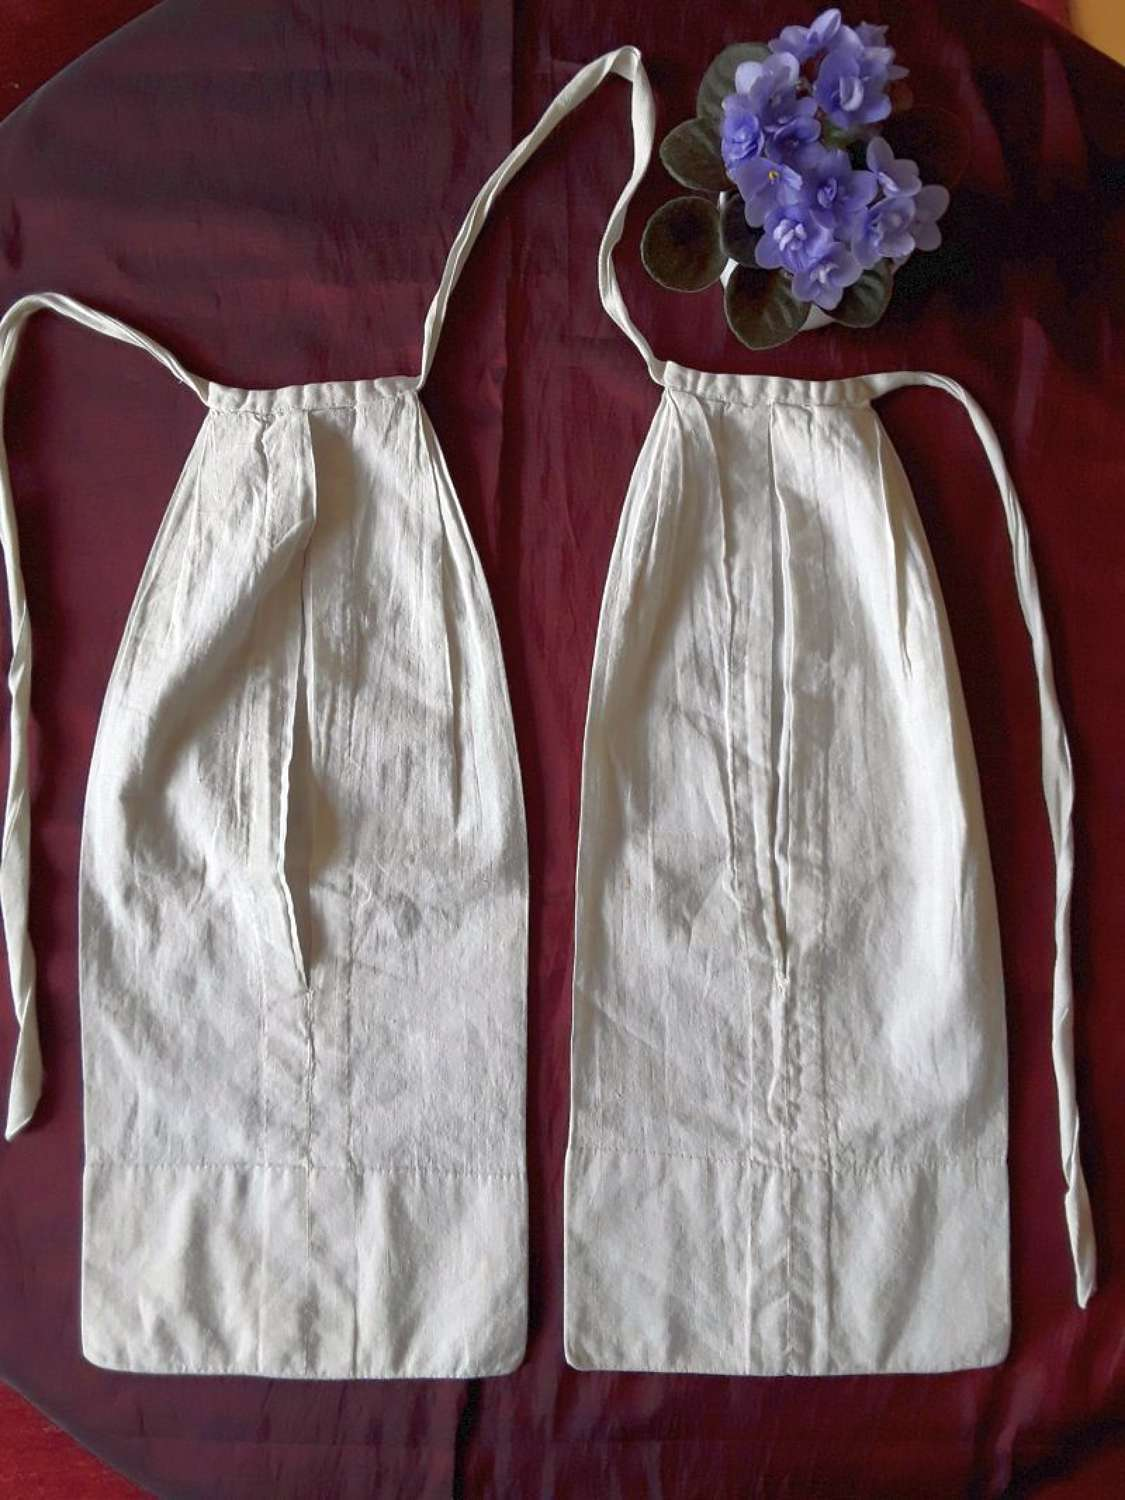 A good pair of early 19th century pockets. French or English